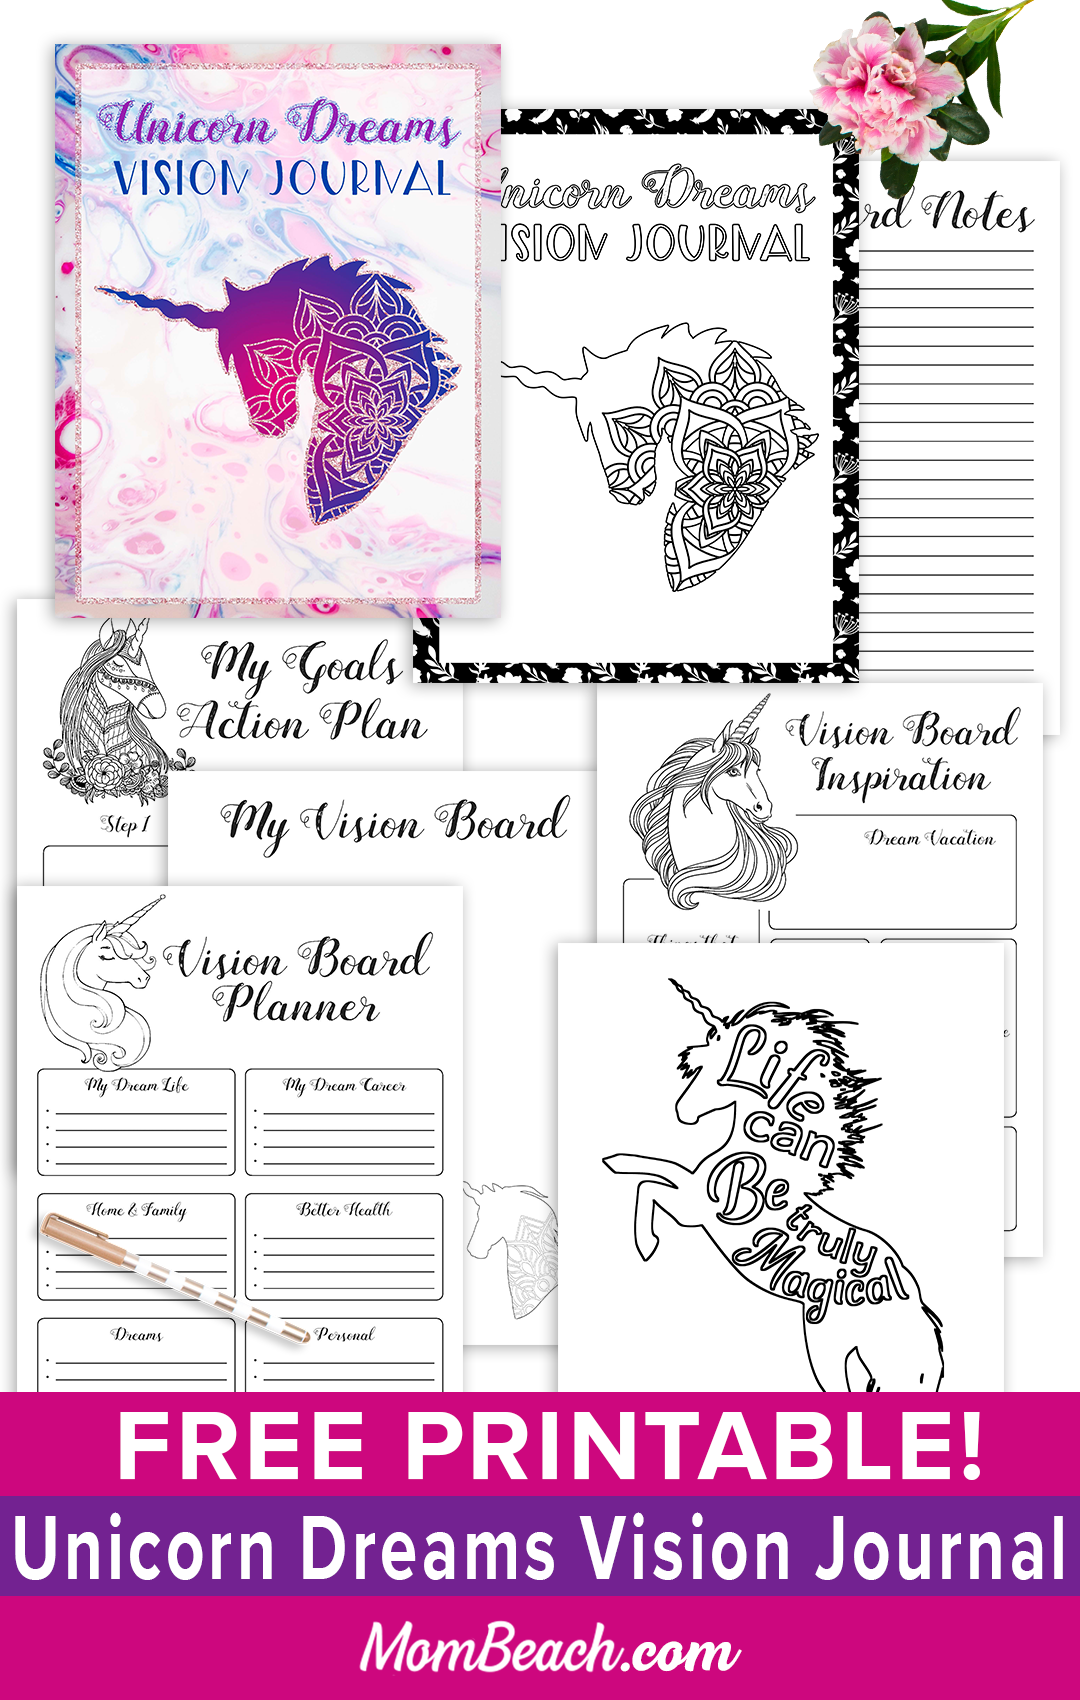 You won't believe how fun this free printable Unicorn Dreams Vision Journal is! It has 15 pages and is a fun coloring book to help spark your creativity! You'll love this free printable journal that also has a planner page. There are even 3 motivational quotes coloring pages. Free printable journals and free printable planners are so much fun! #freeprintables #freeprintablejournal #freeprintableplanner #freecoloringbook #freeprintable #unicornprintable #unicorn